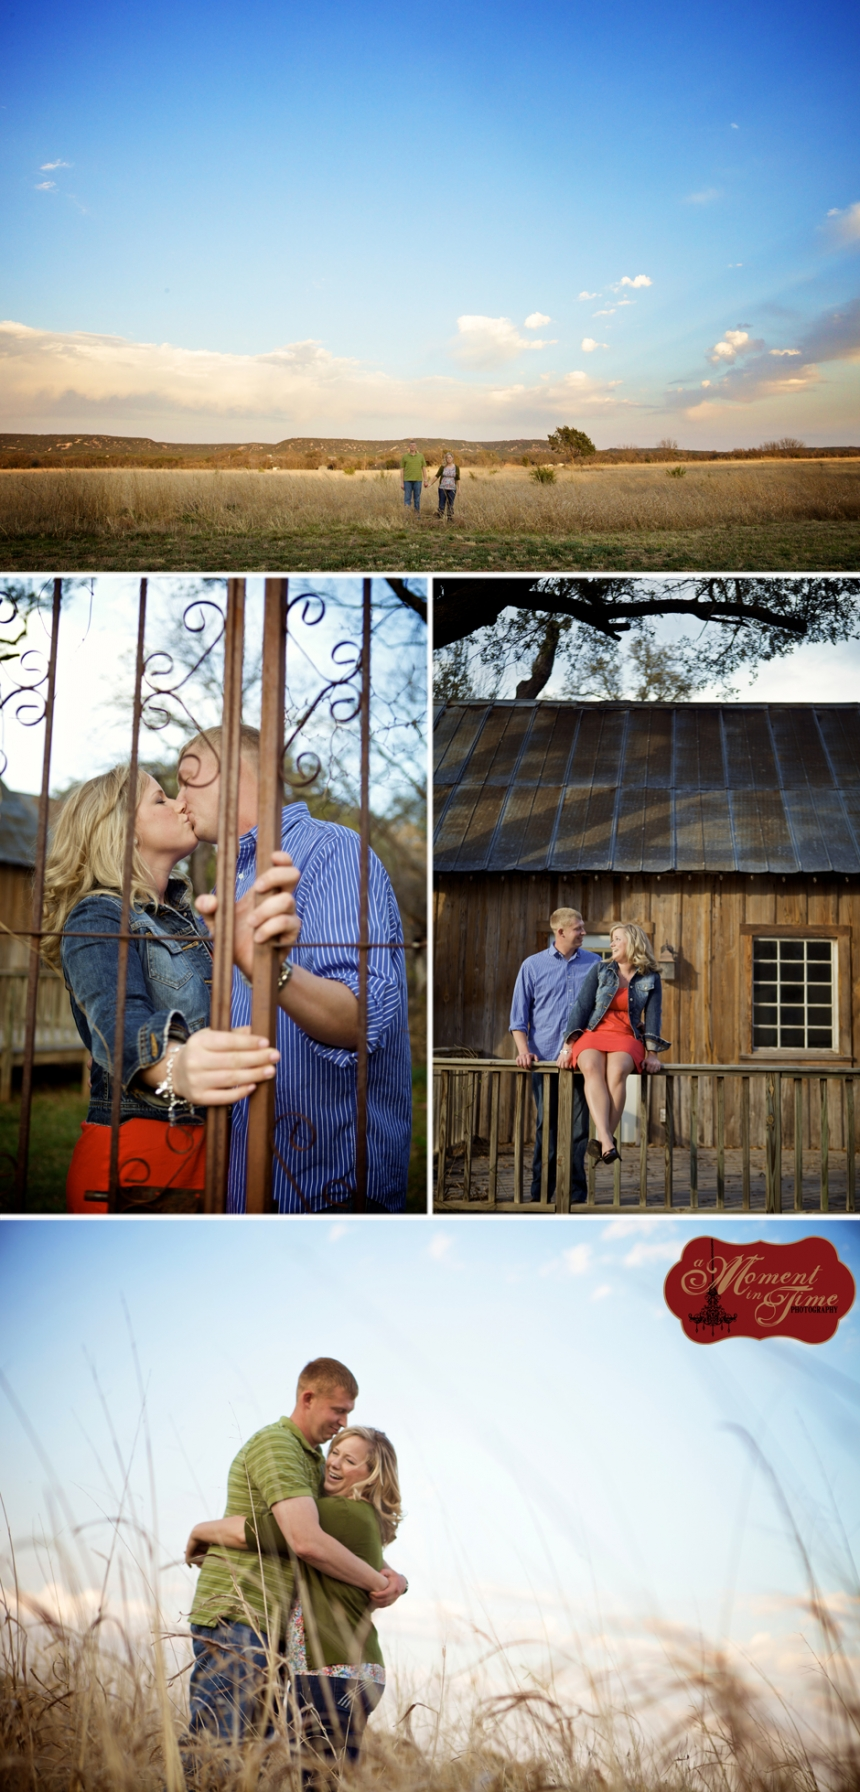 Jennifer Menuez, now Jennifer Nordquest, and Keith Nordquest hired A Moment in Time Photography and Jennifer Nieland, engagement photographer in Abilene, Texas to photograph their engagement session before their wedding this fall in Ohio.